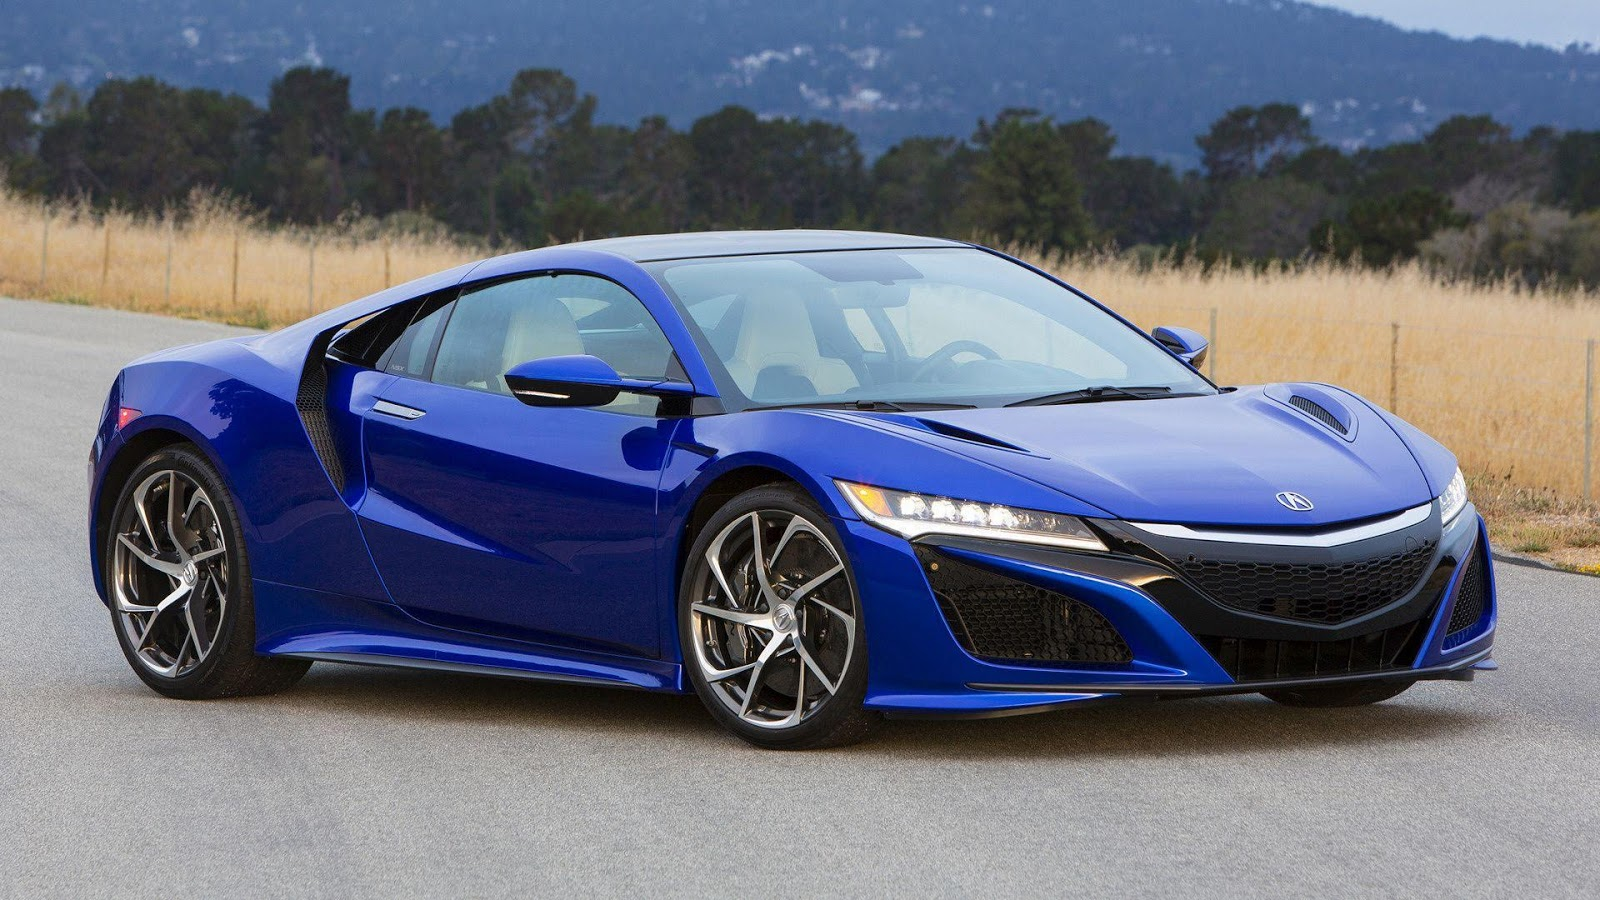 Acura NSX car wallpapers hd